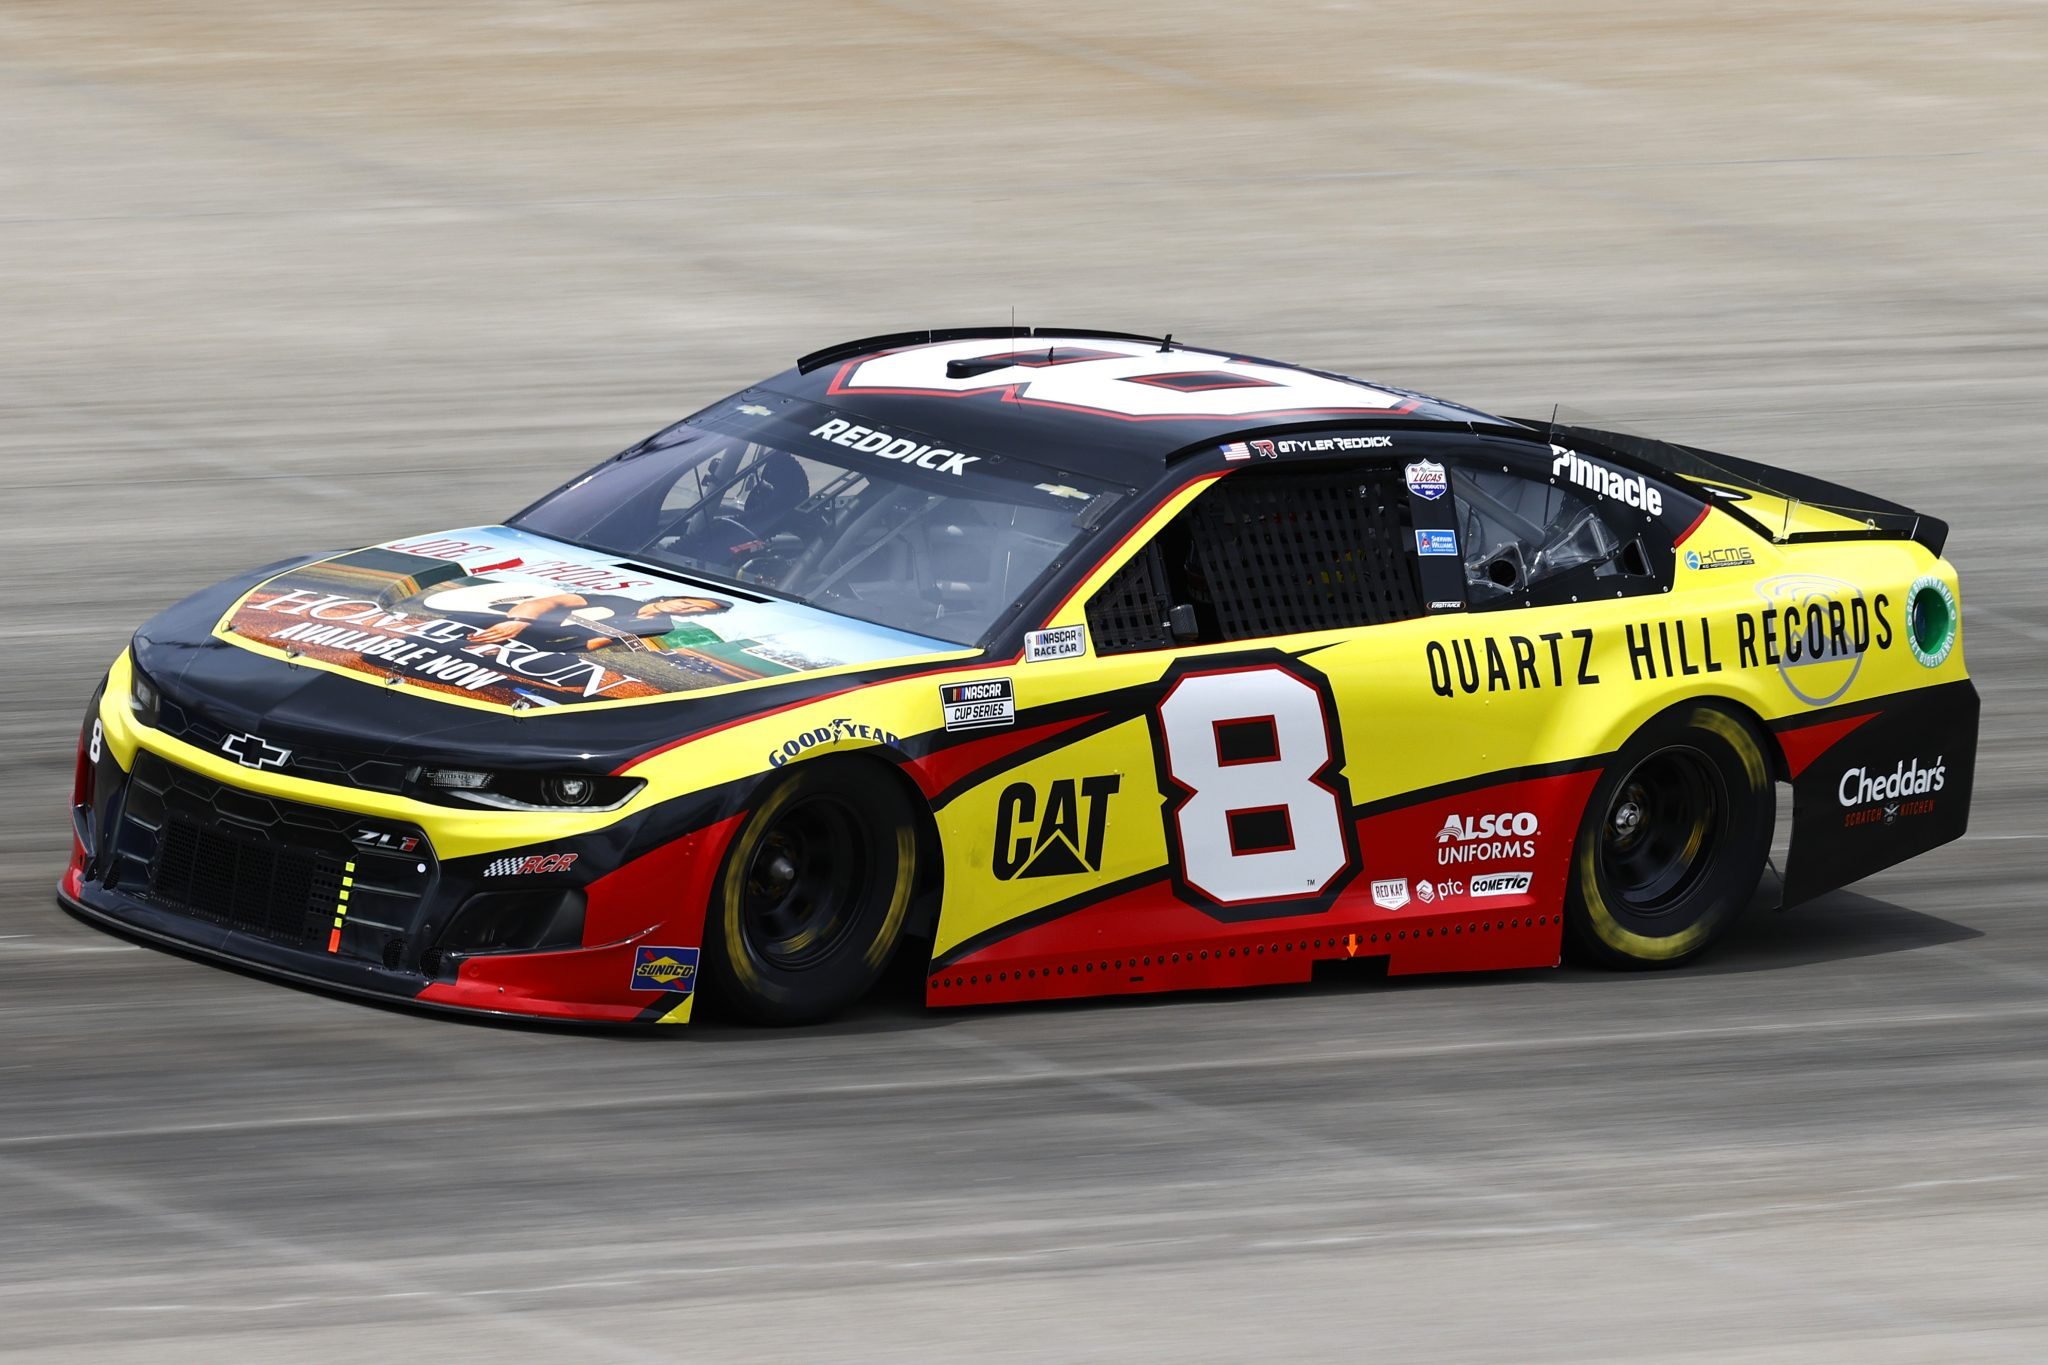 LEBANON, TENNESSEE - JUNE 19: Tyler Reddick, driver of the #8 Quartz Hill Records Chevrolet, drives during practice for the NASCAR Cup Series Ally 400 at Nashville Superspeedway on June 19, 2021 in Lebanon, Tennessee. (Photo by Jared C. Tilton/Getty Images)   Getty Images